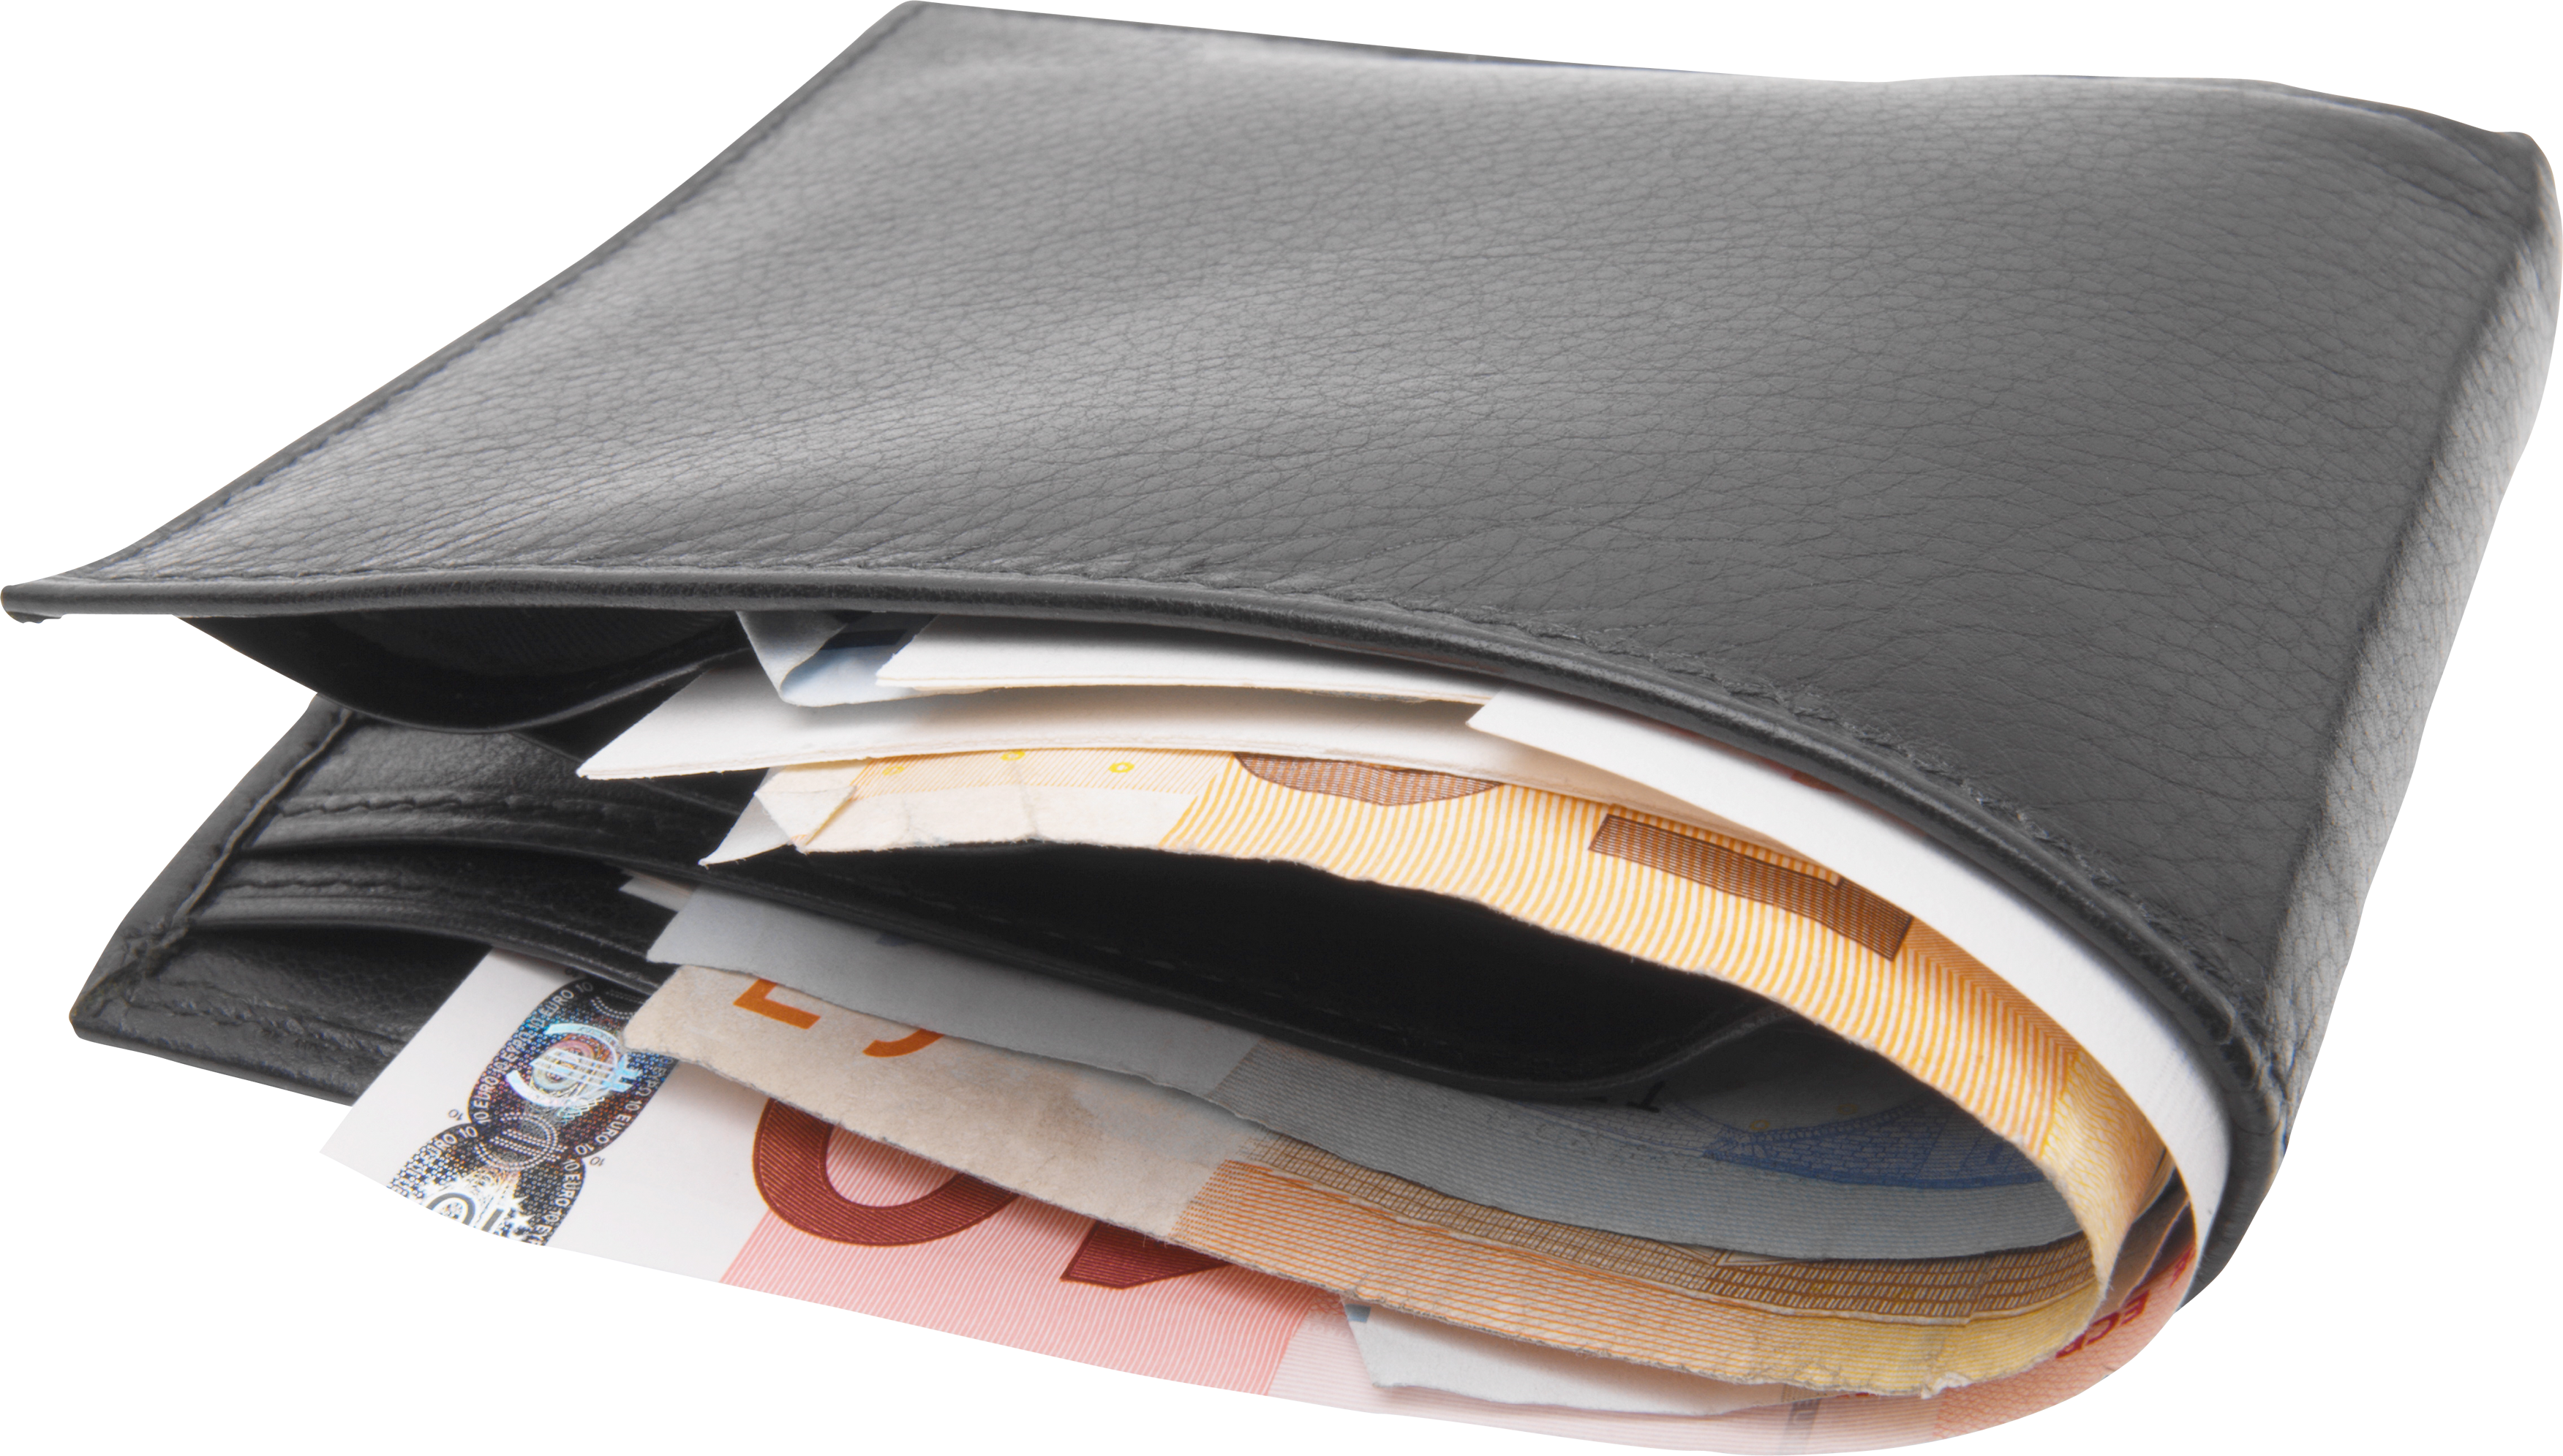 Wallet clipart money pocket. With png image purepng